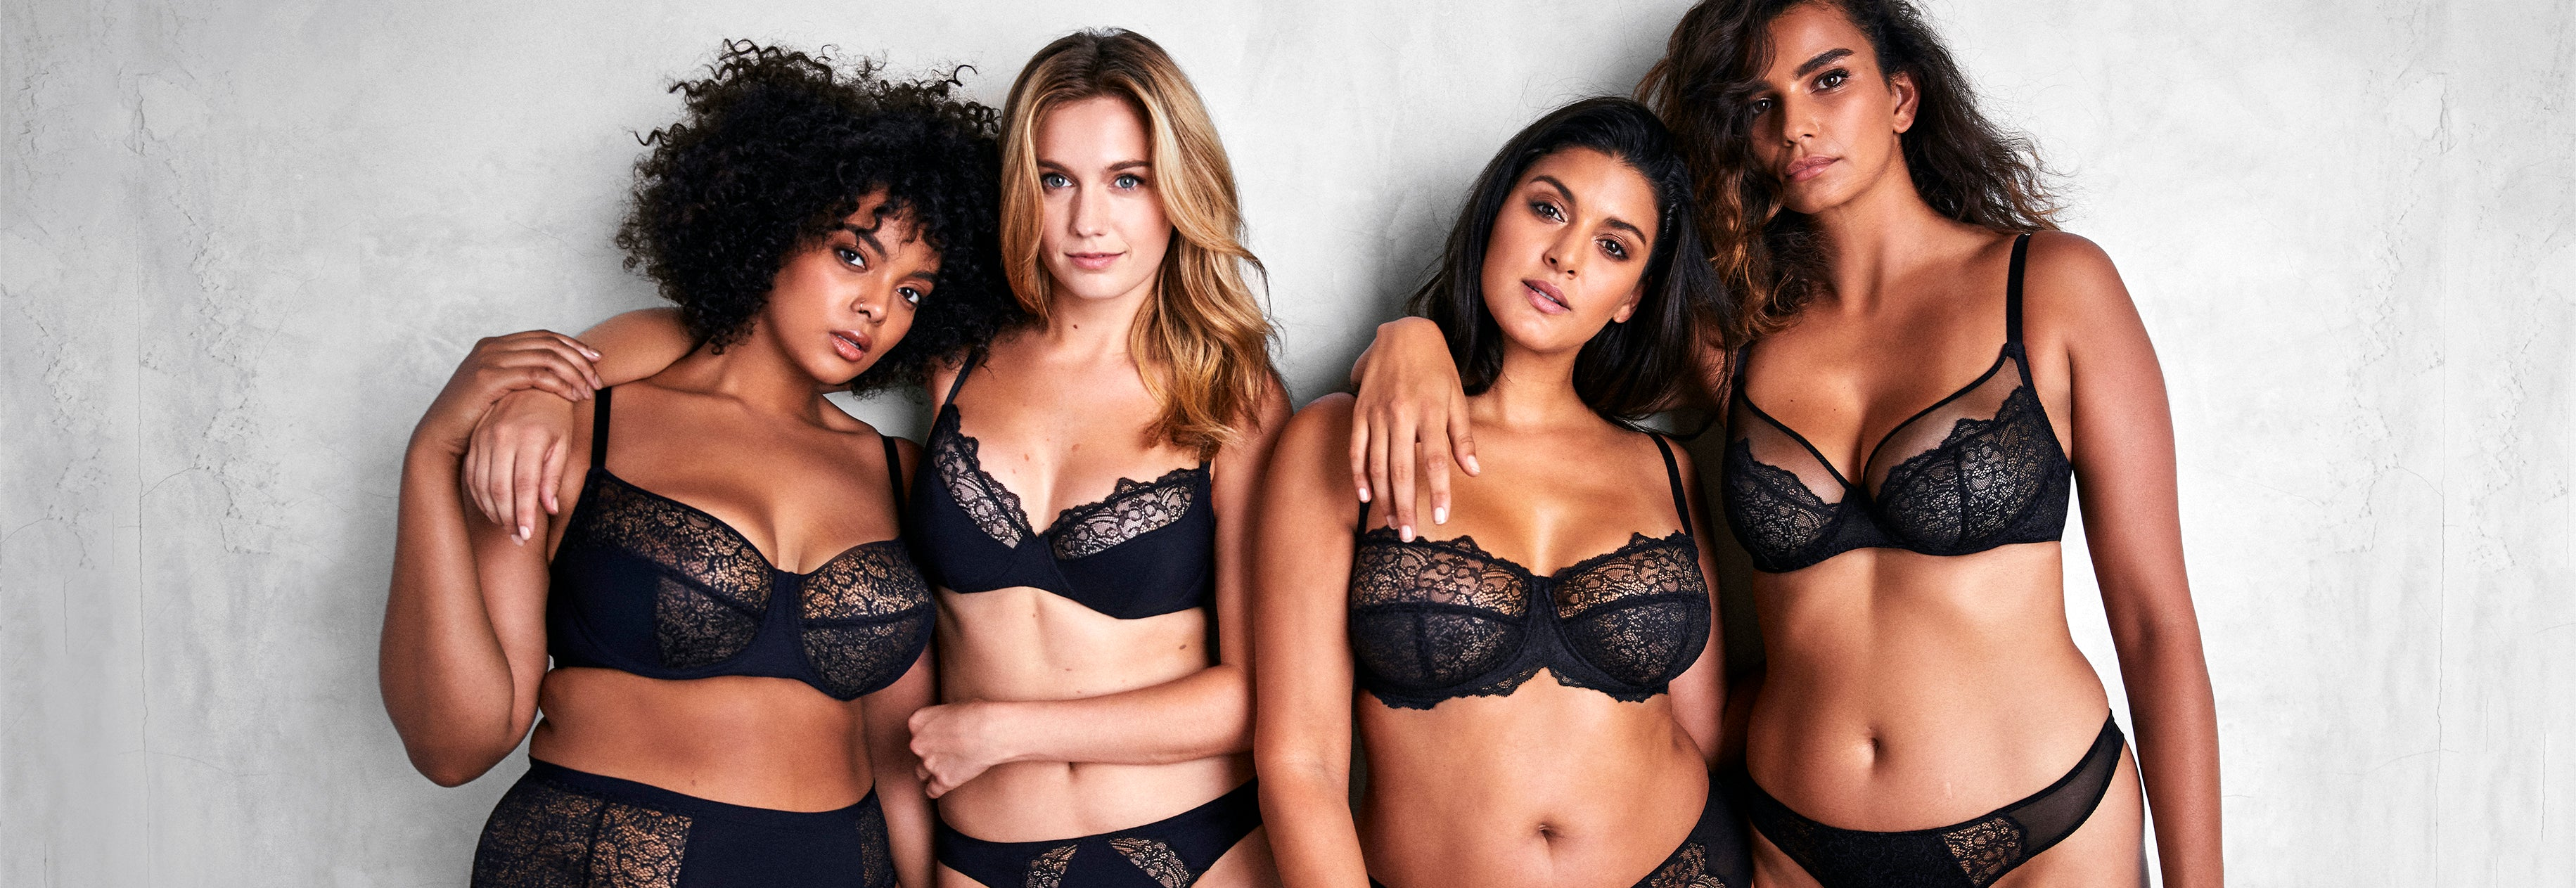 Liberté campaign photo of four models wearing Liberté lingerie. From left to right the models are wearing the Crosby Demi Bra with Crosby High Rise Brief, the Crosby Plunge Bra with Crosby Scalloped Cheeky, Bowery Lace Demi Bra with Bowery Scalloped Hipster and Bowery Mesh Plunge Bra with Bowery Mesh Thong.